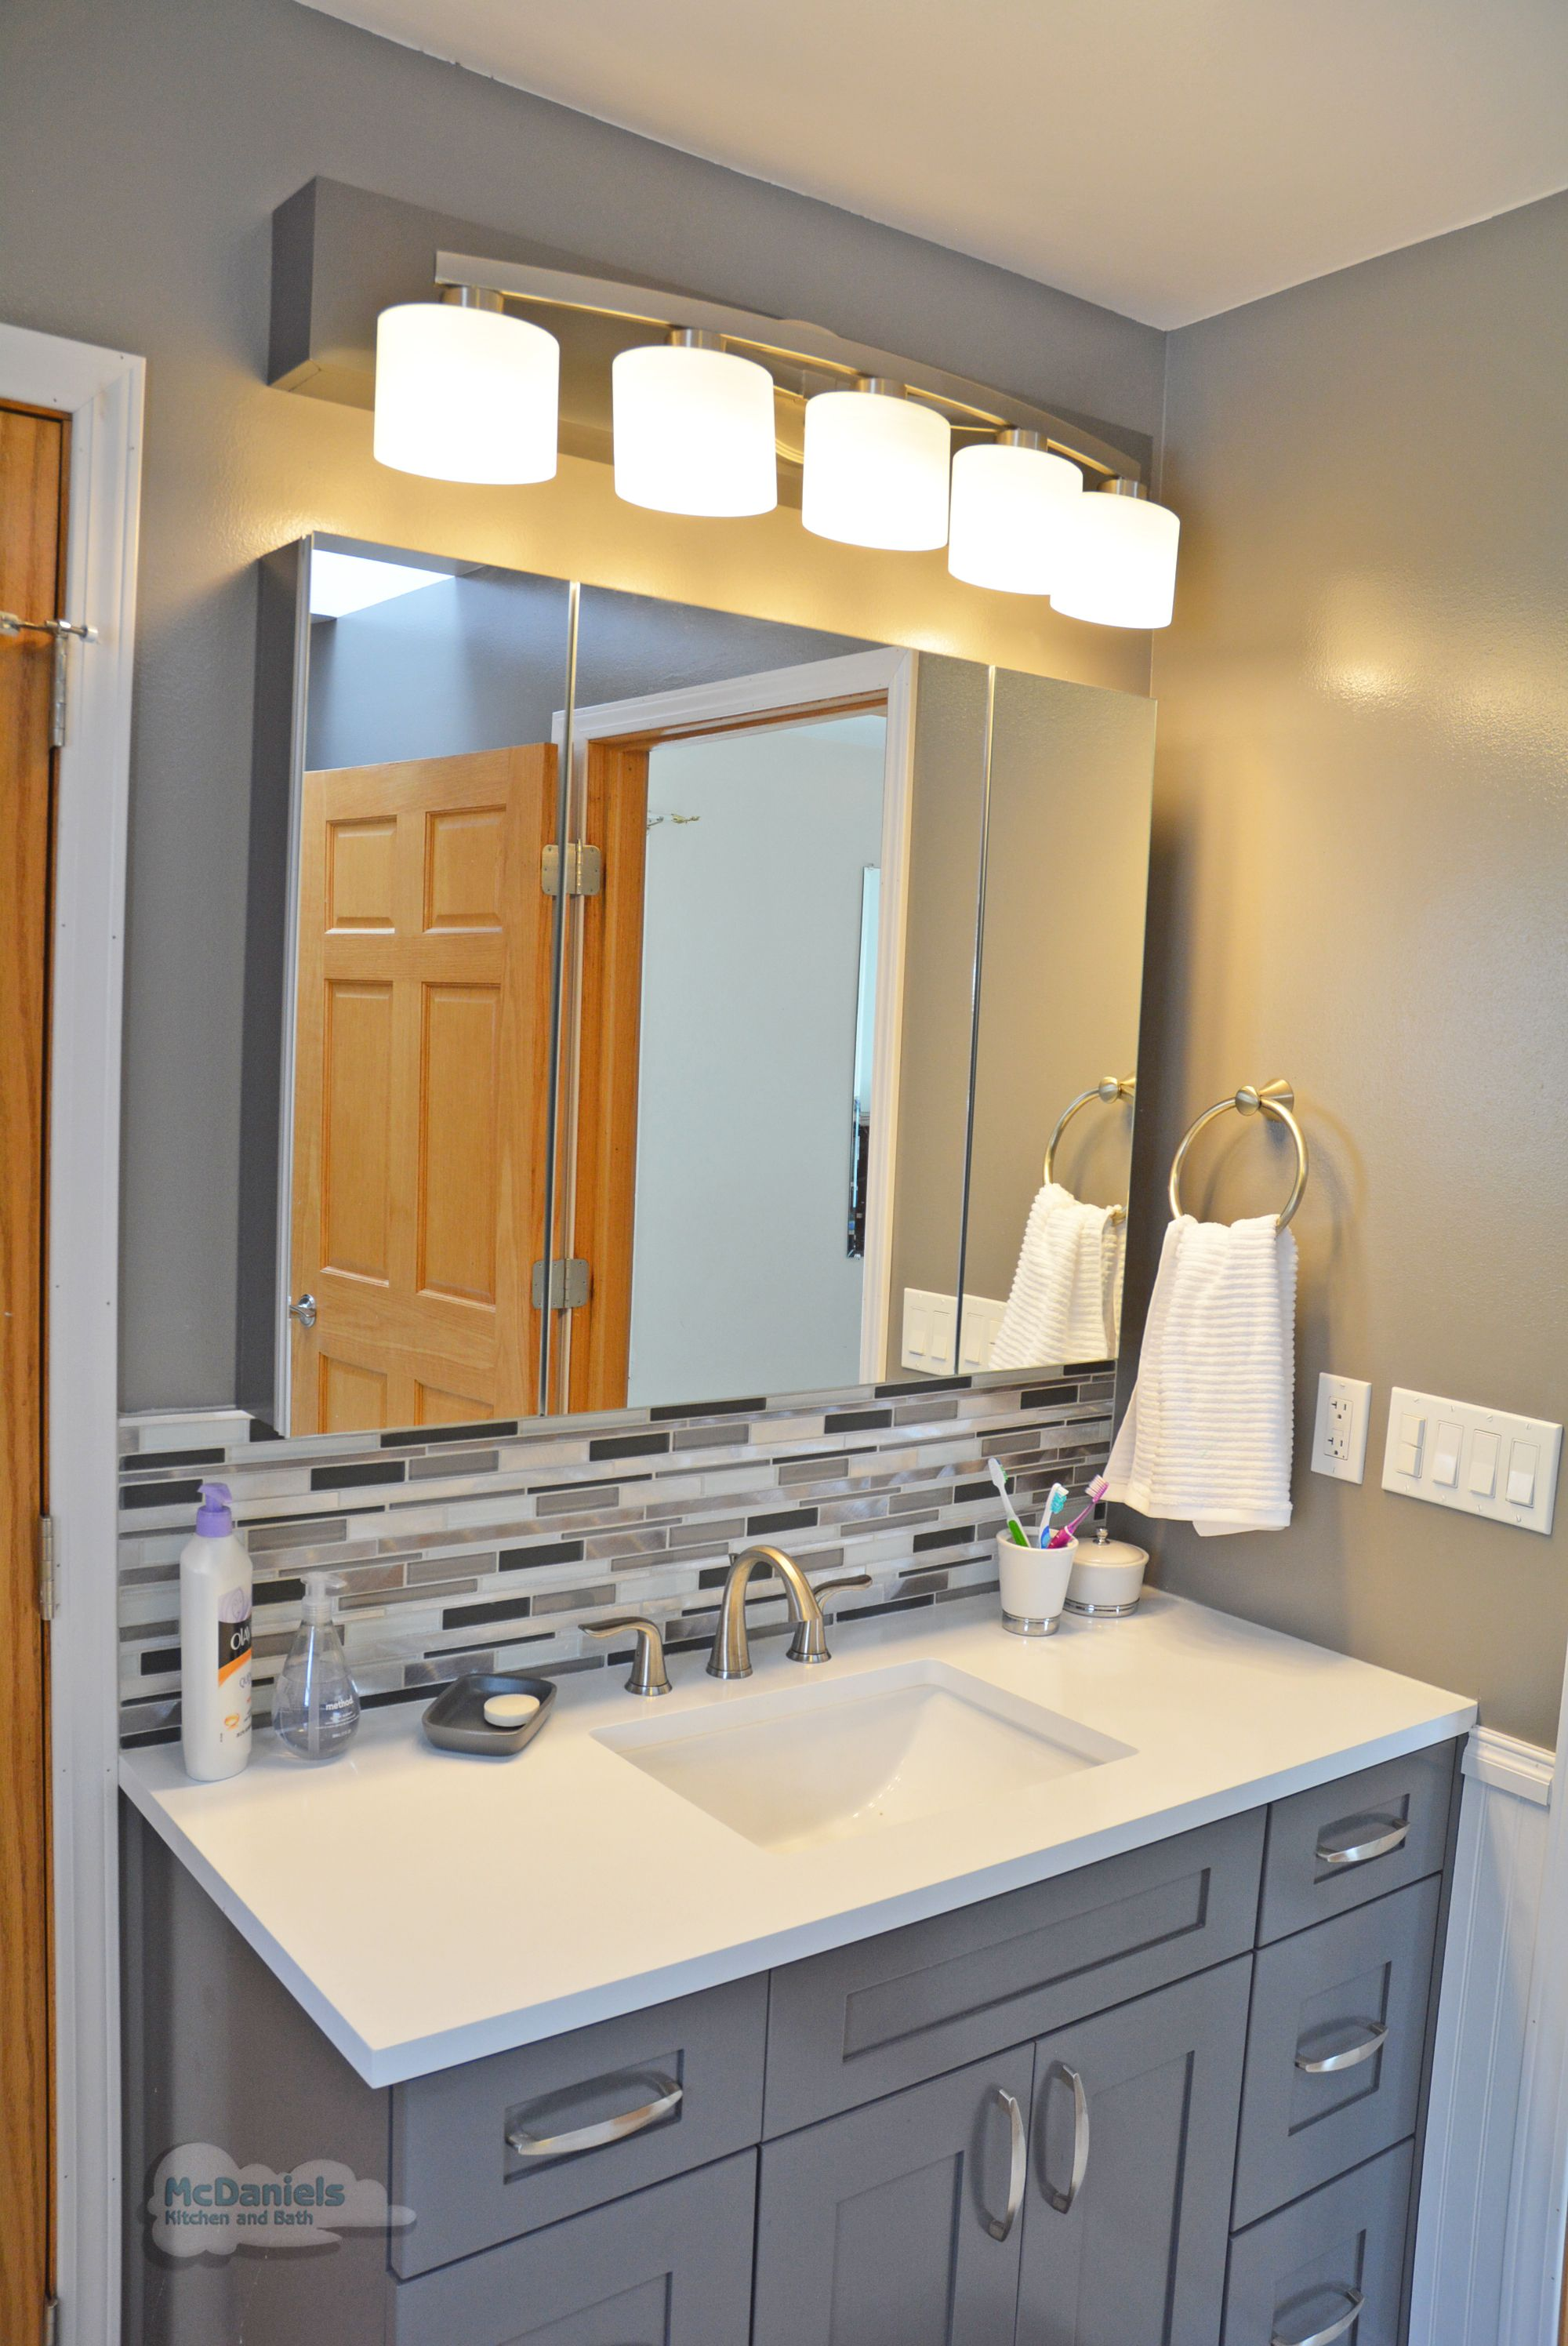 This Contemporary Bathroom Design In A Cool Gray Color Scheme Offers A Relaxing Contemporary Bathroom Designs Tile Backsplash Bathroom Small Bathroom Makeover